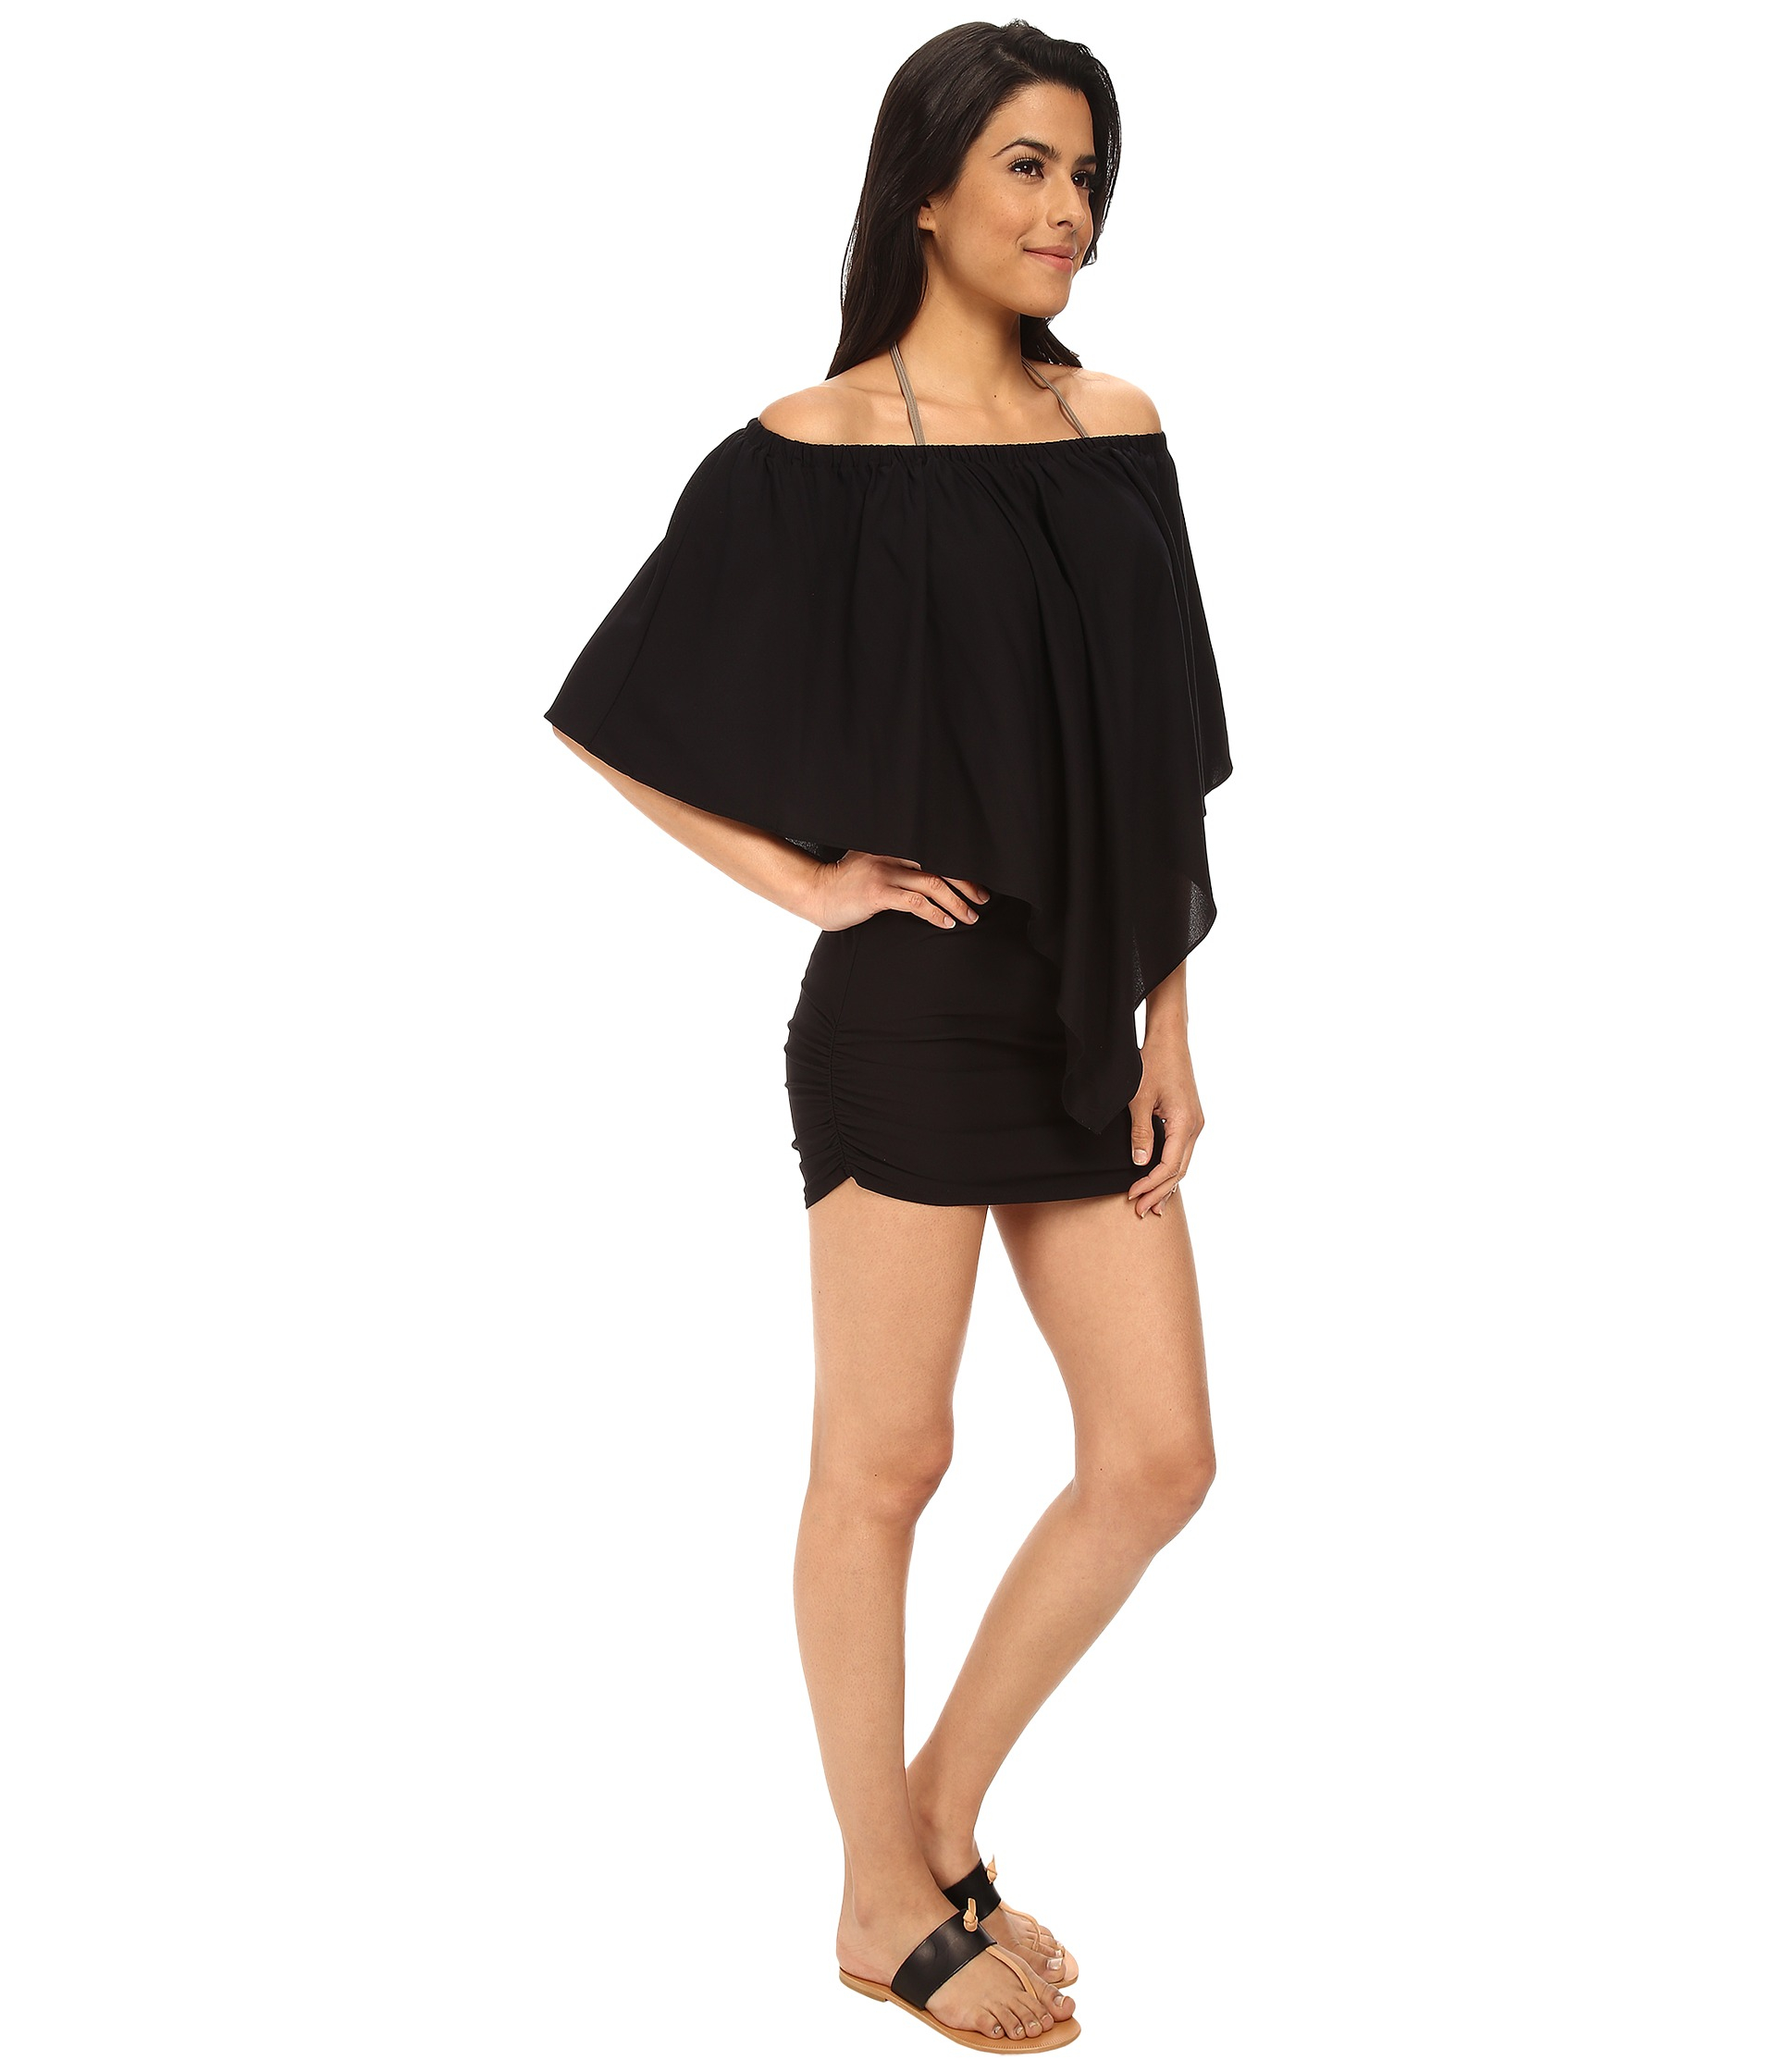 29a1b7d6b38 Lyst - Luli Fama Cosita Buena Party Dress Cover-Up in Black